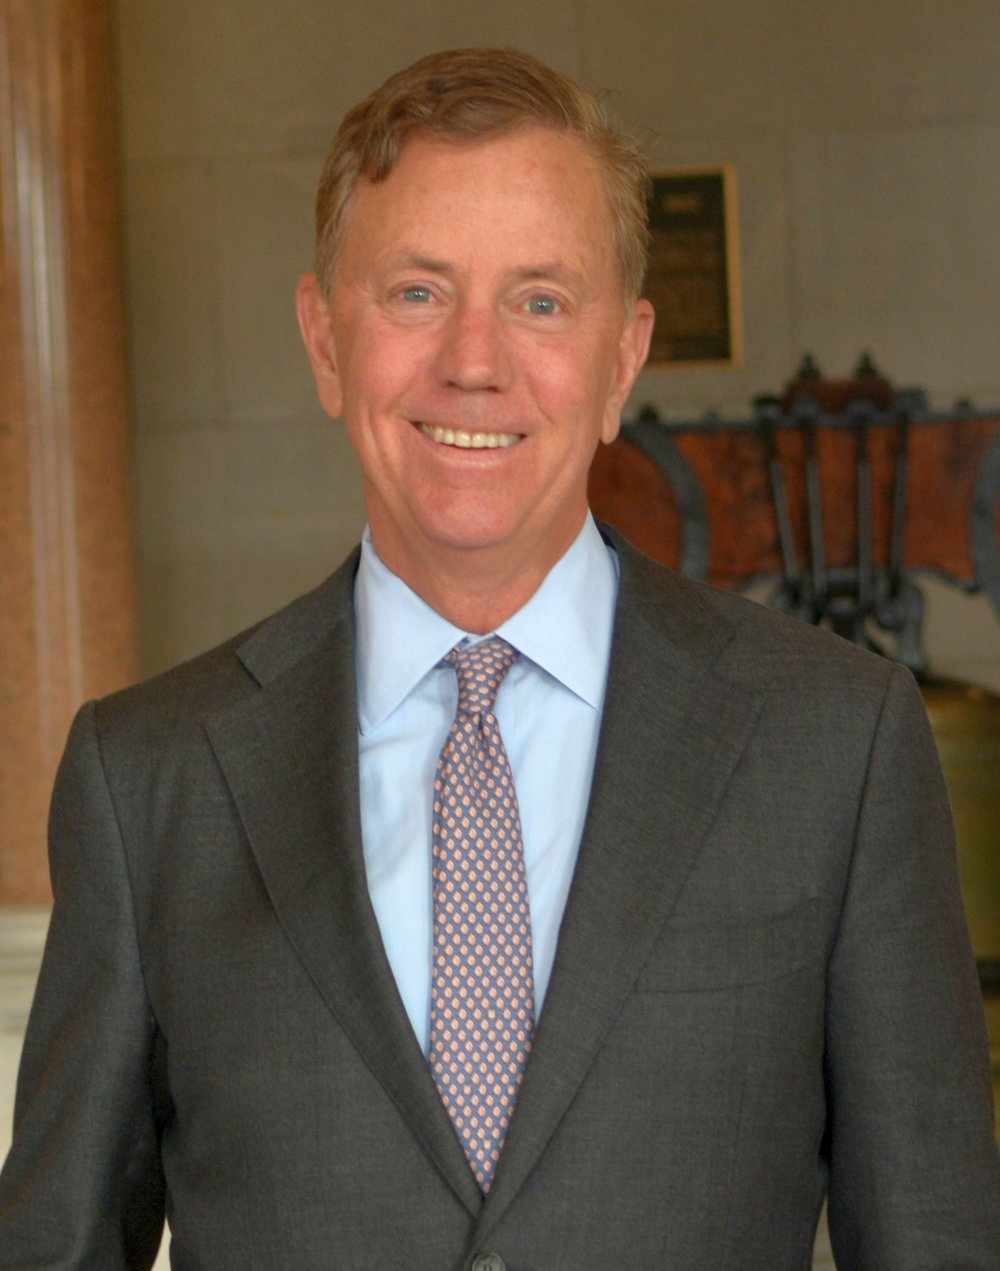 Ned Lamont, Connecticut